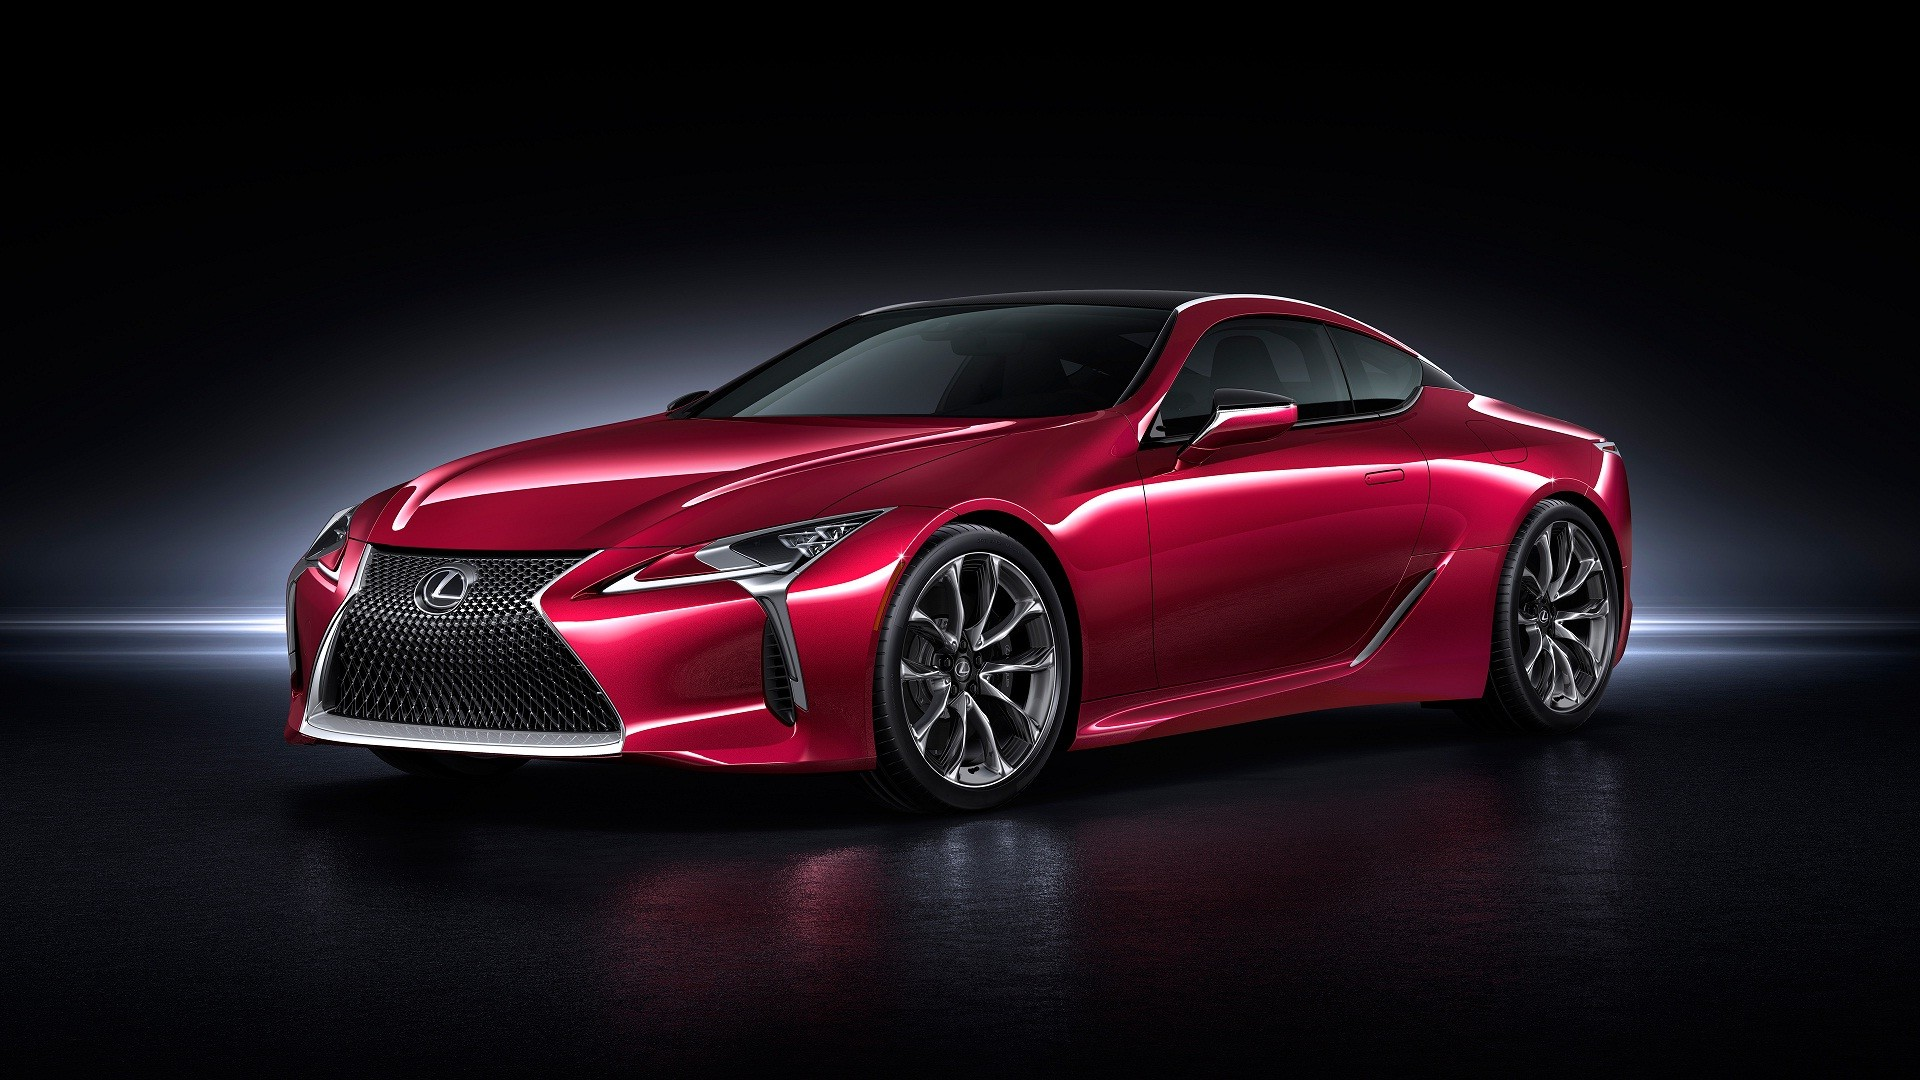 1920x1080 full-shine-red-lexus-car-black-background-wallpapers